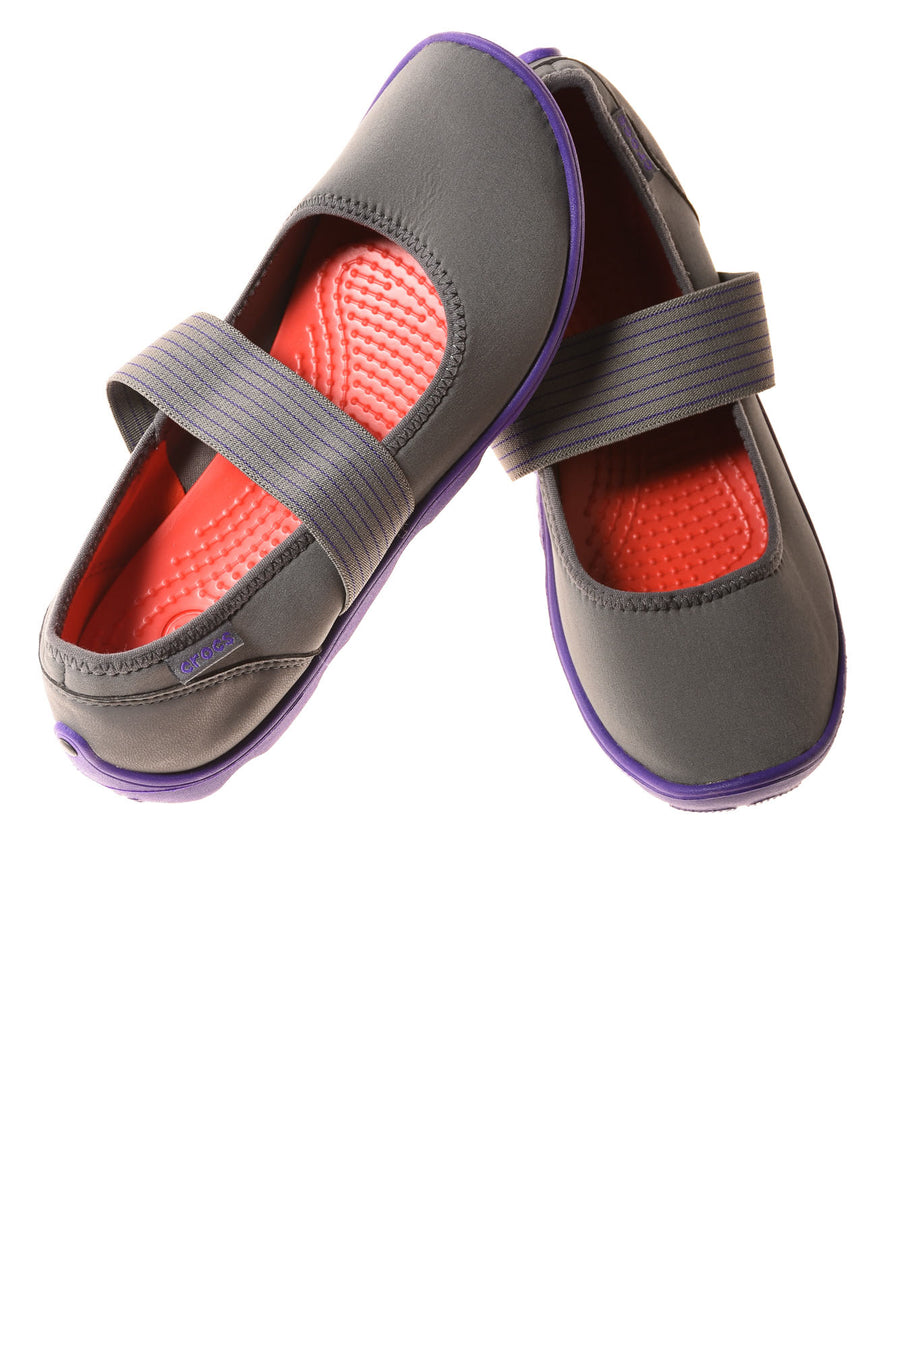 USED Crocs Women's Shoes 7 Gray & Purple